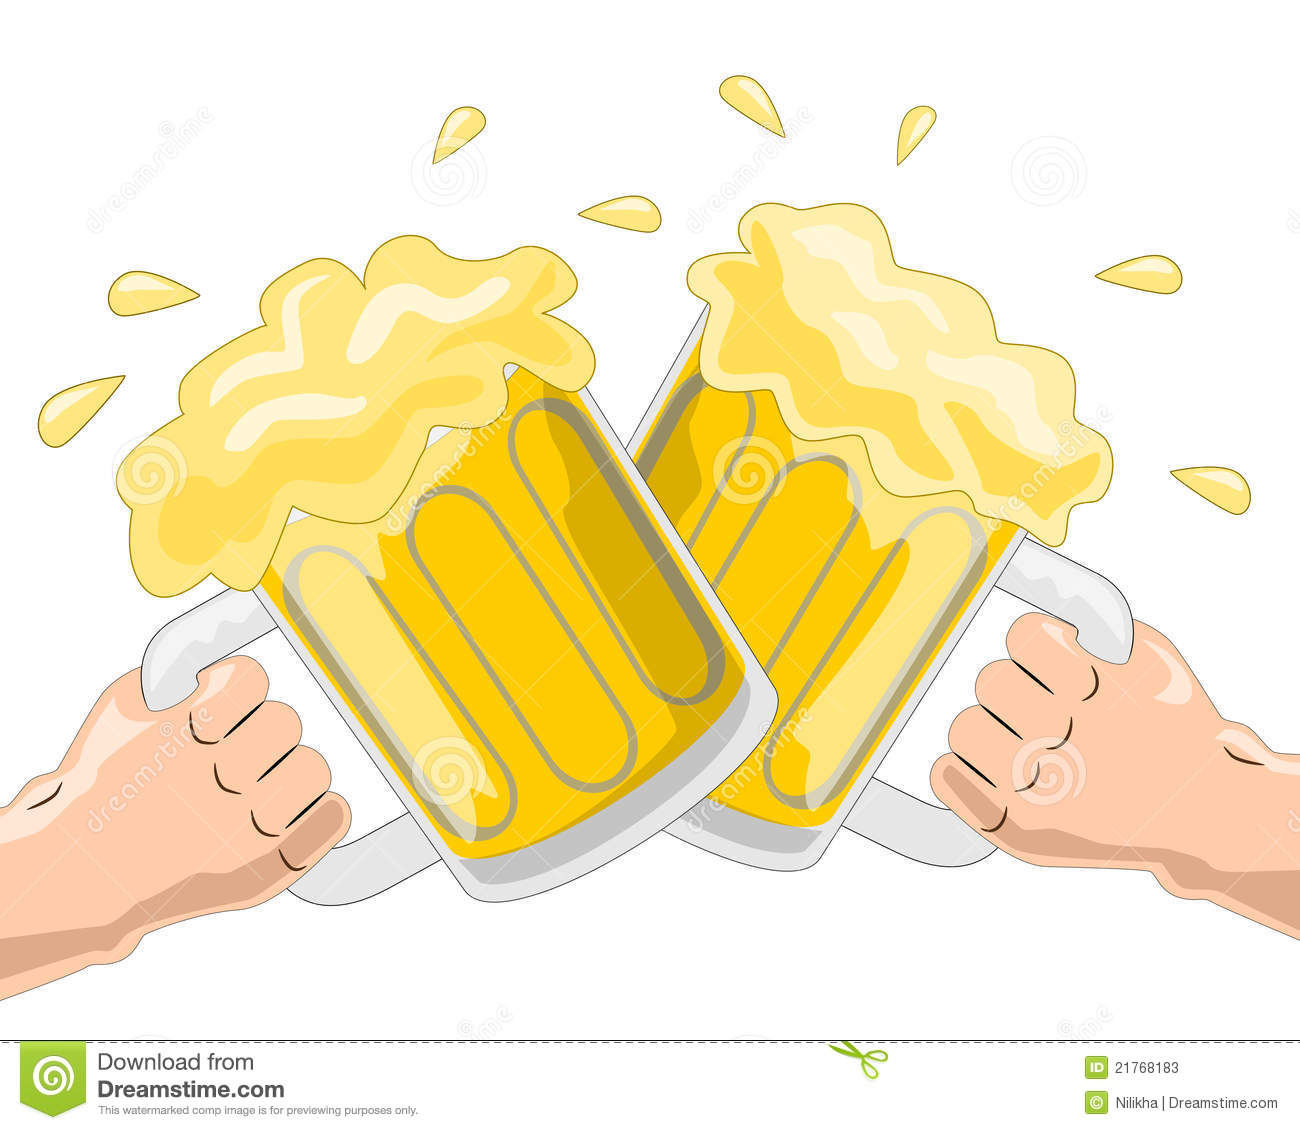 Illustration Of Two Hands Holding Beer Mugs And Having A Toast